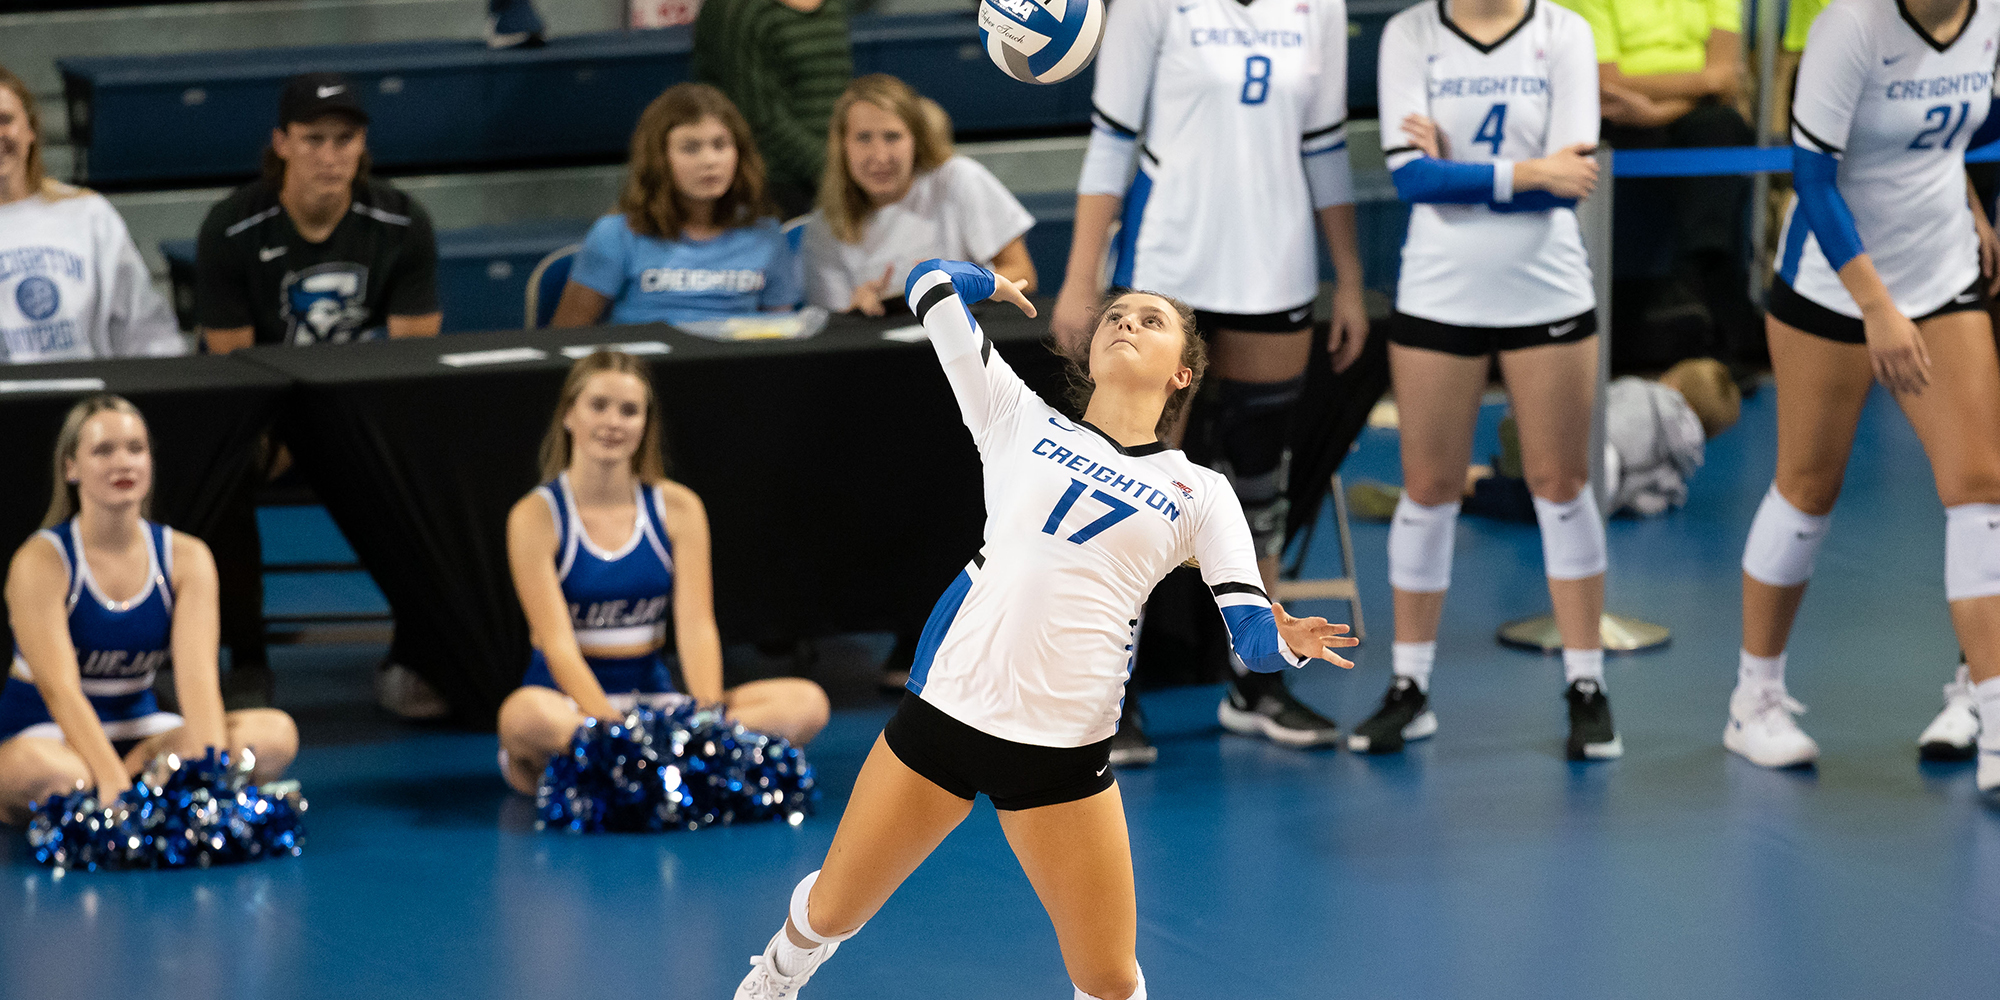 Volleyball Inches Forward In Latest Rankings Creighton University Athletics